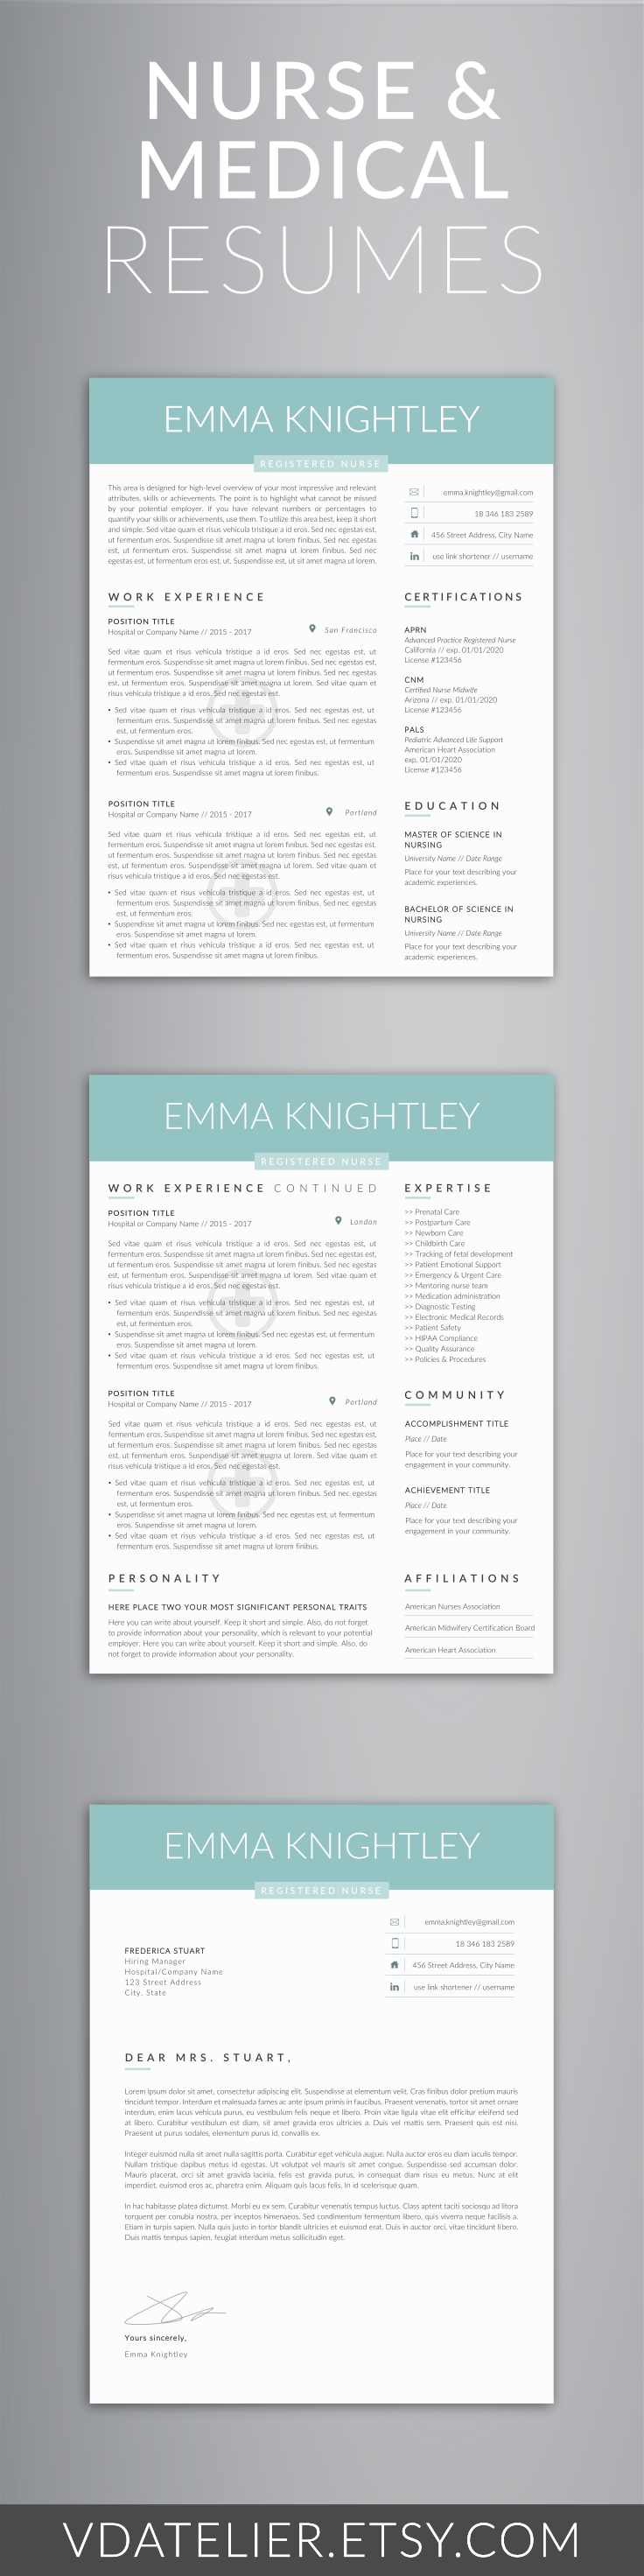 Nursing Cv Templates   Picture Ideas References Clean and professional nurse resume template Nurse